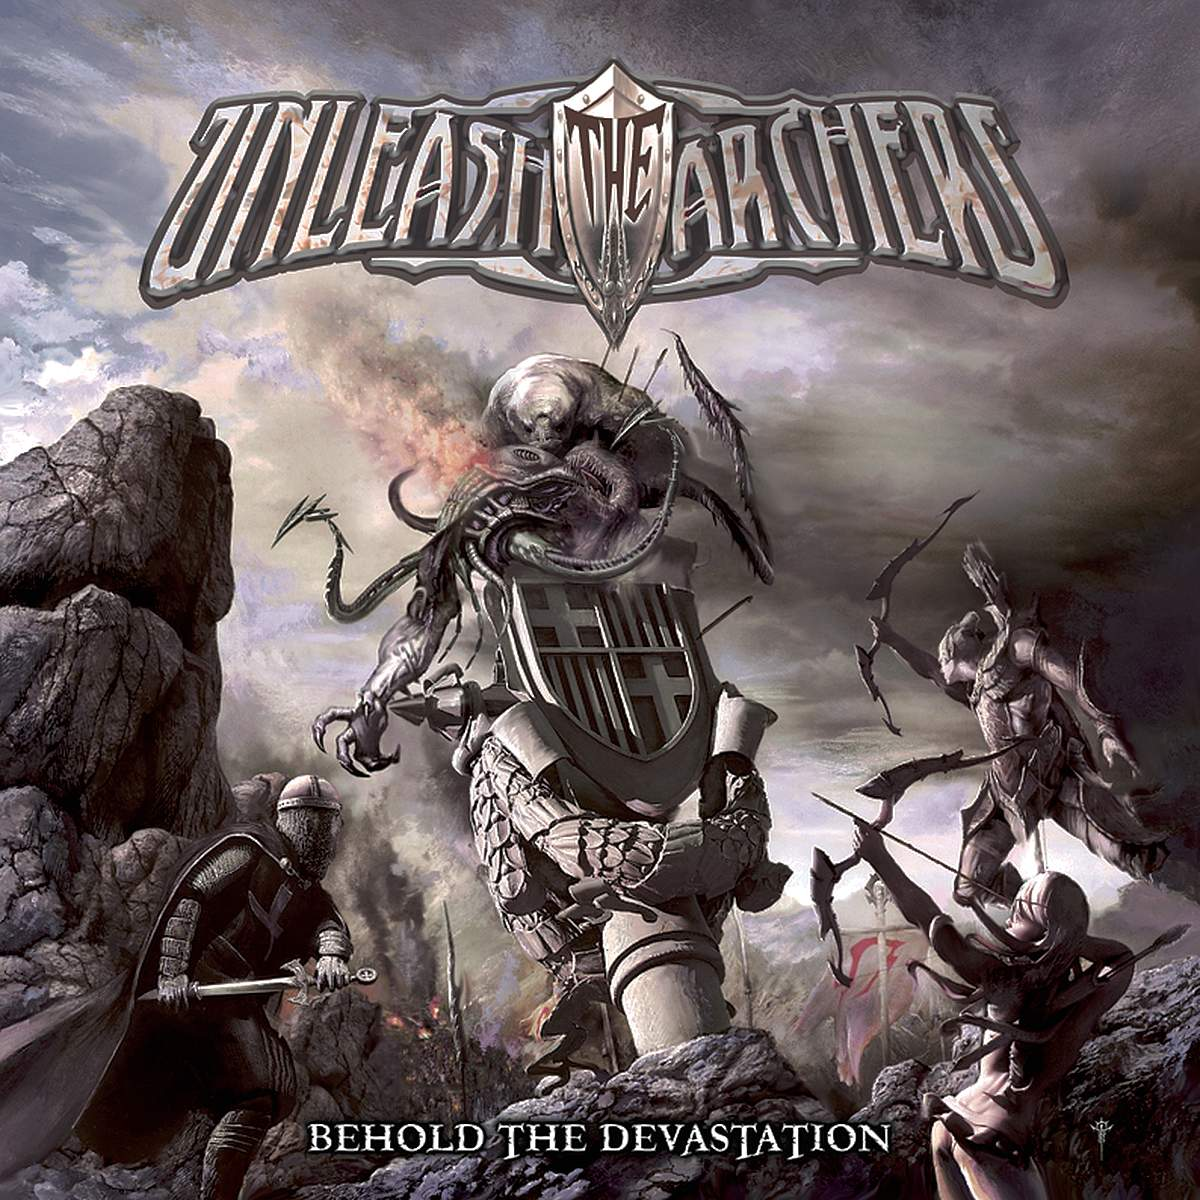 Unleash the Archers - Behold the Devastation